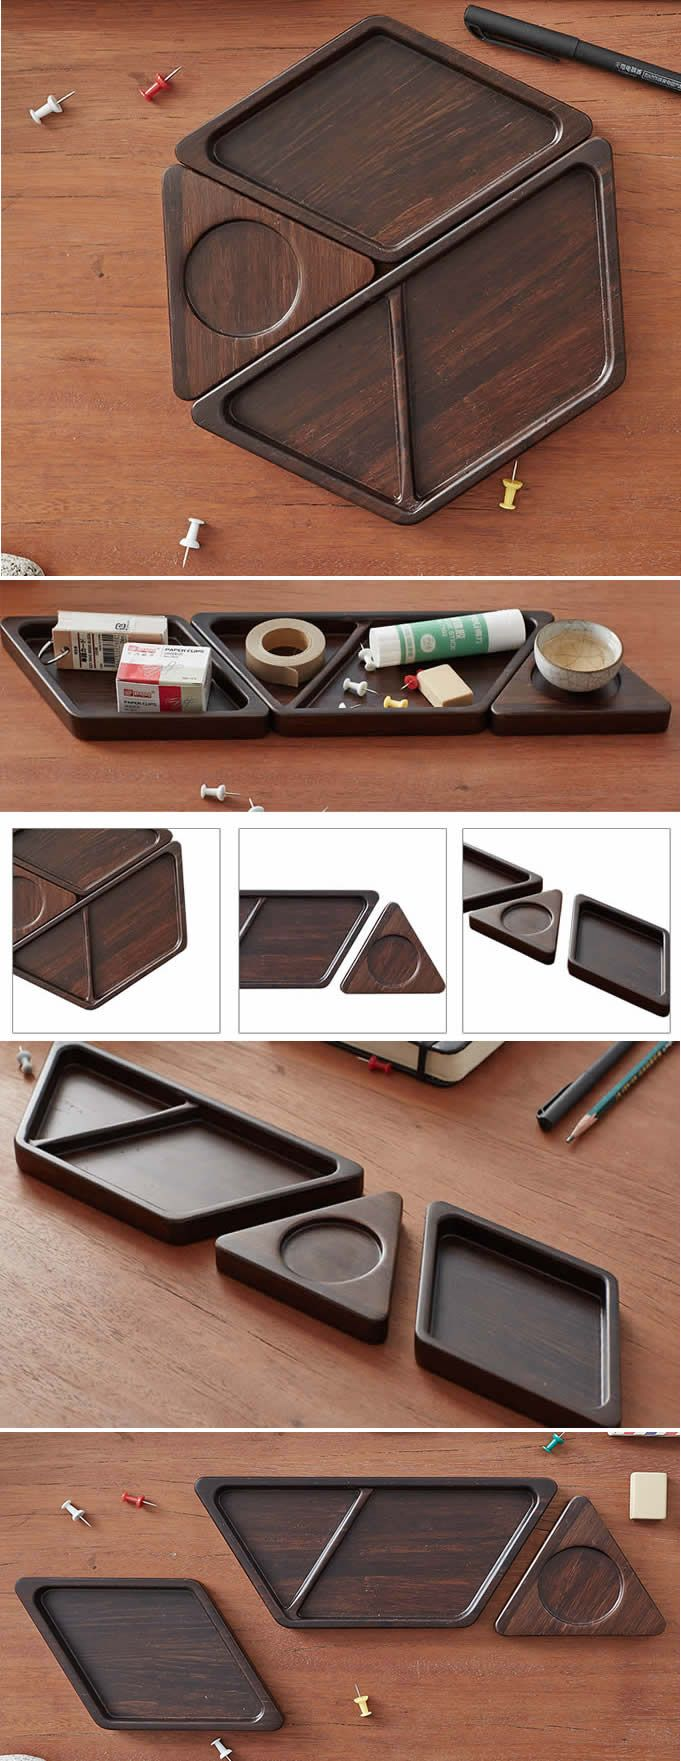 Bamboo Desk Organizer Tray Set